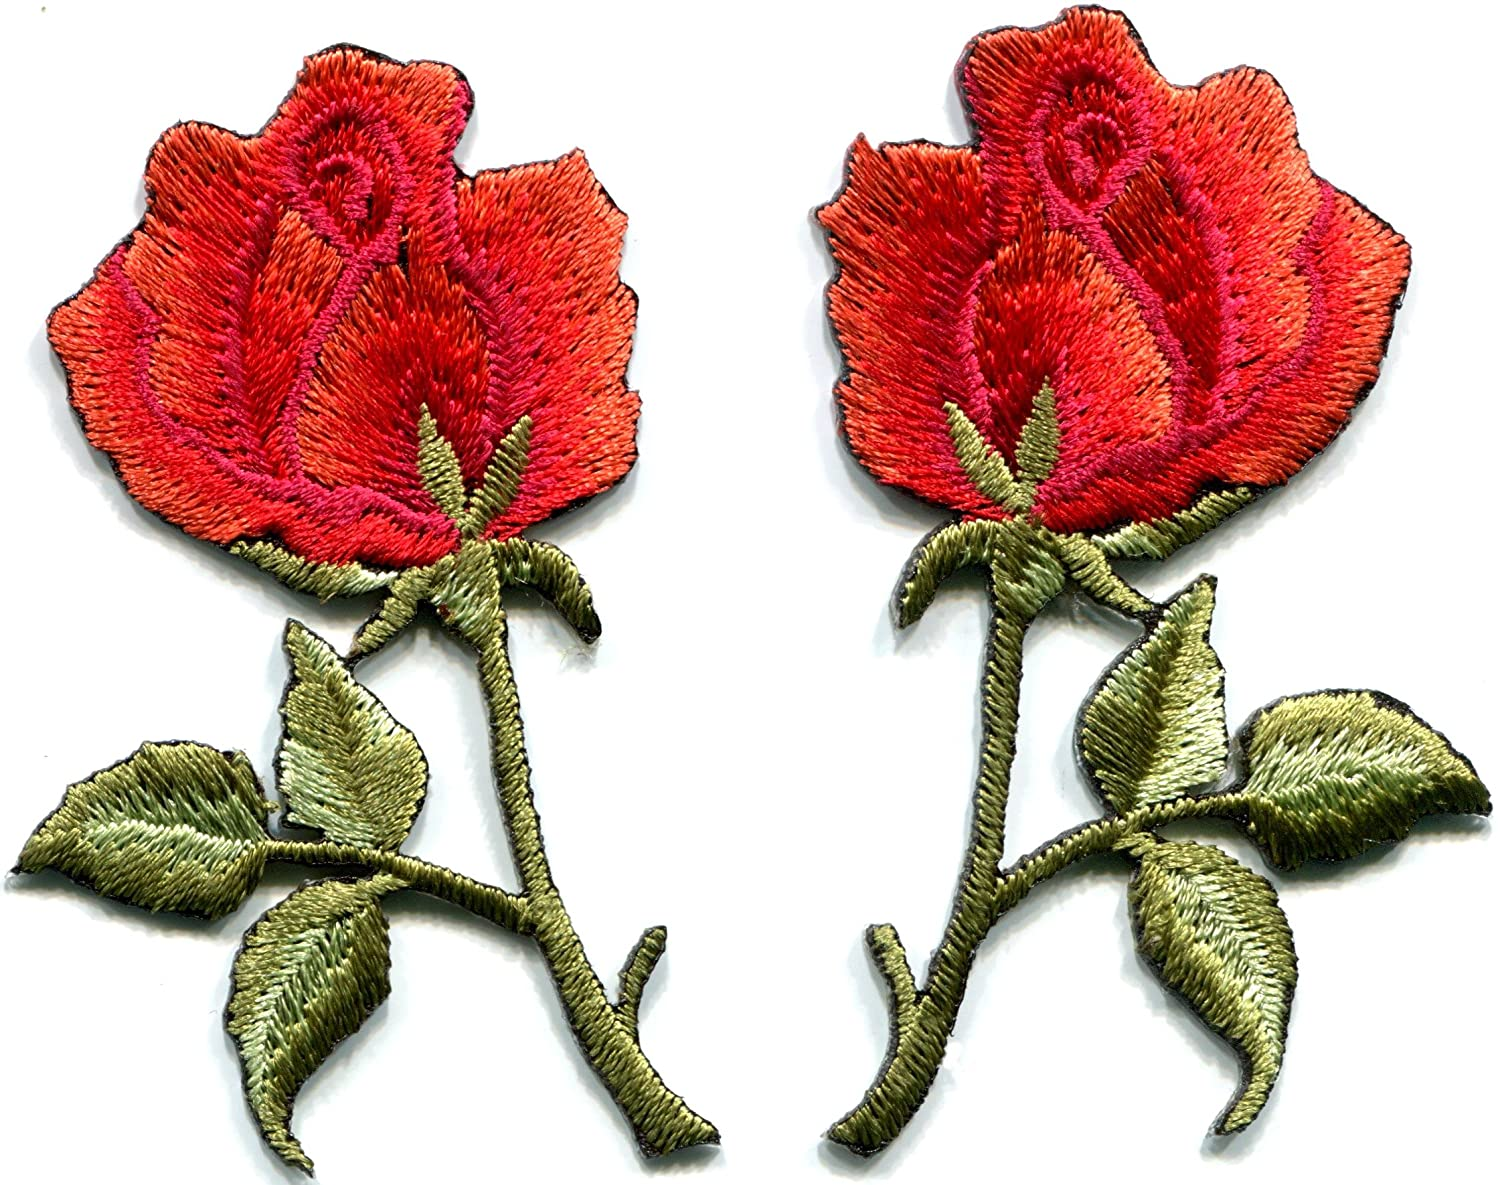 Red roses pair flowers floral retro boho hippie embroidered appliques iron-ons patches new by TKPatch   B00RVJDWK8